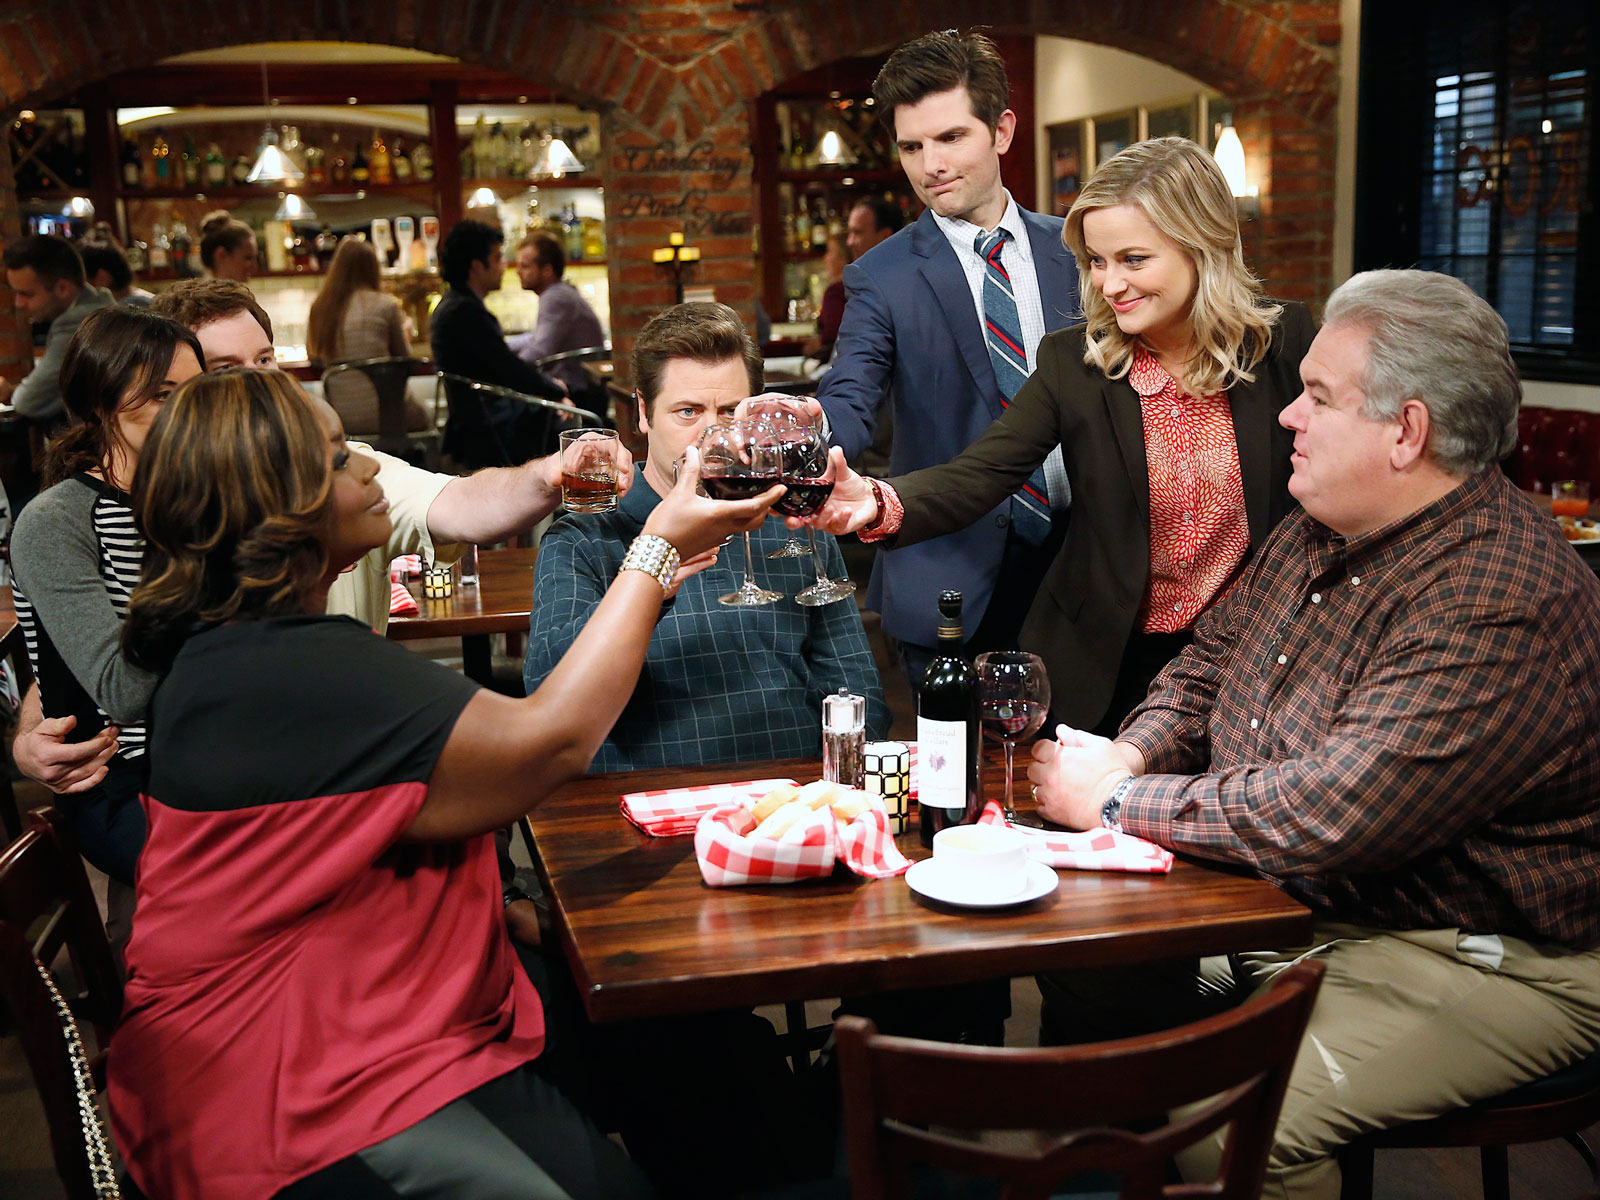 You Can Drink Snake Juice at This 'Parks and Recreation' Pop-Up Bar